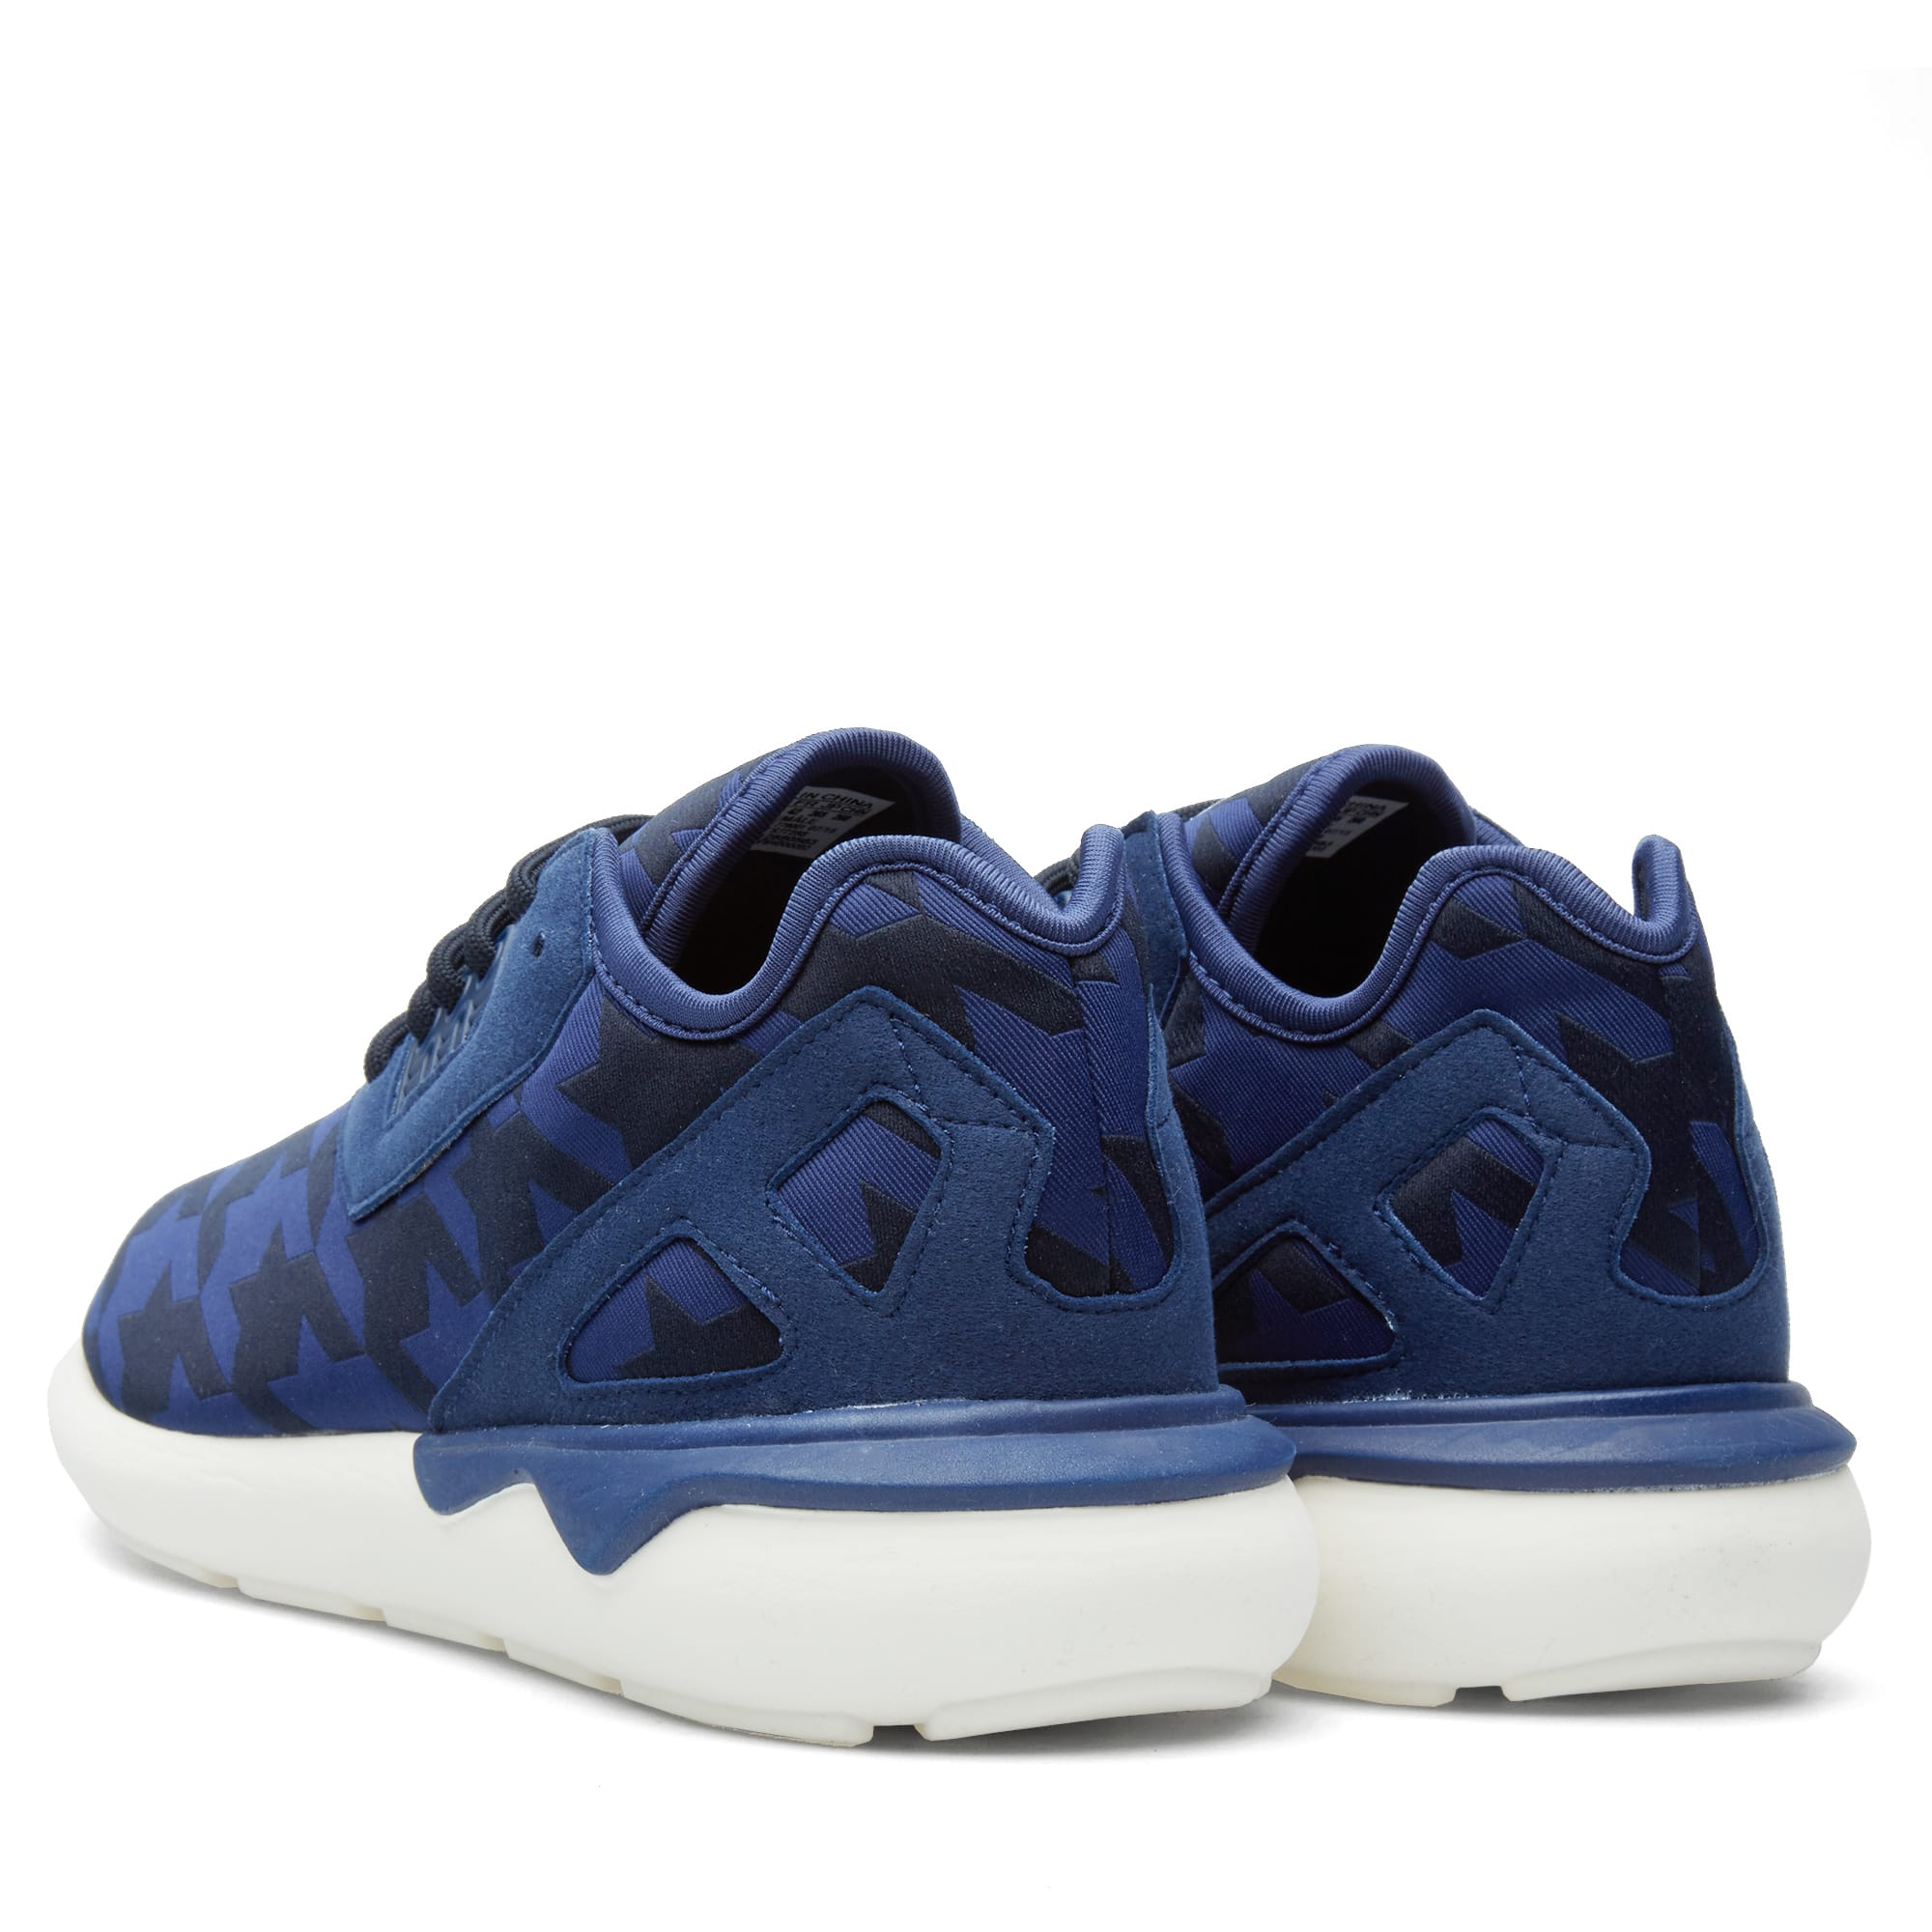 on sale 4ec5f 06157 Adidas x The Fourness Tubular Runner Solid Grey, Bold Blue   White   END.